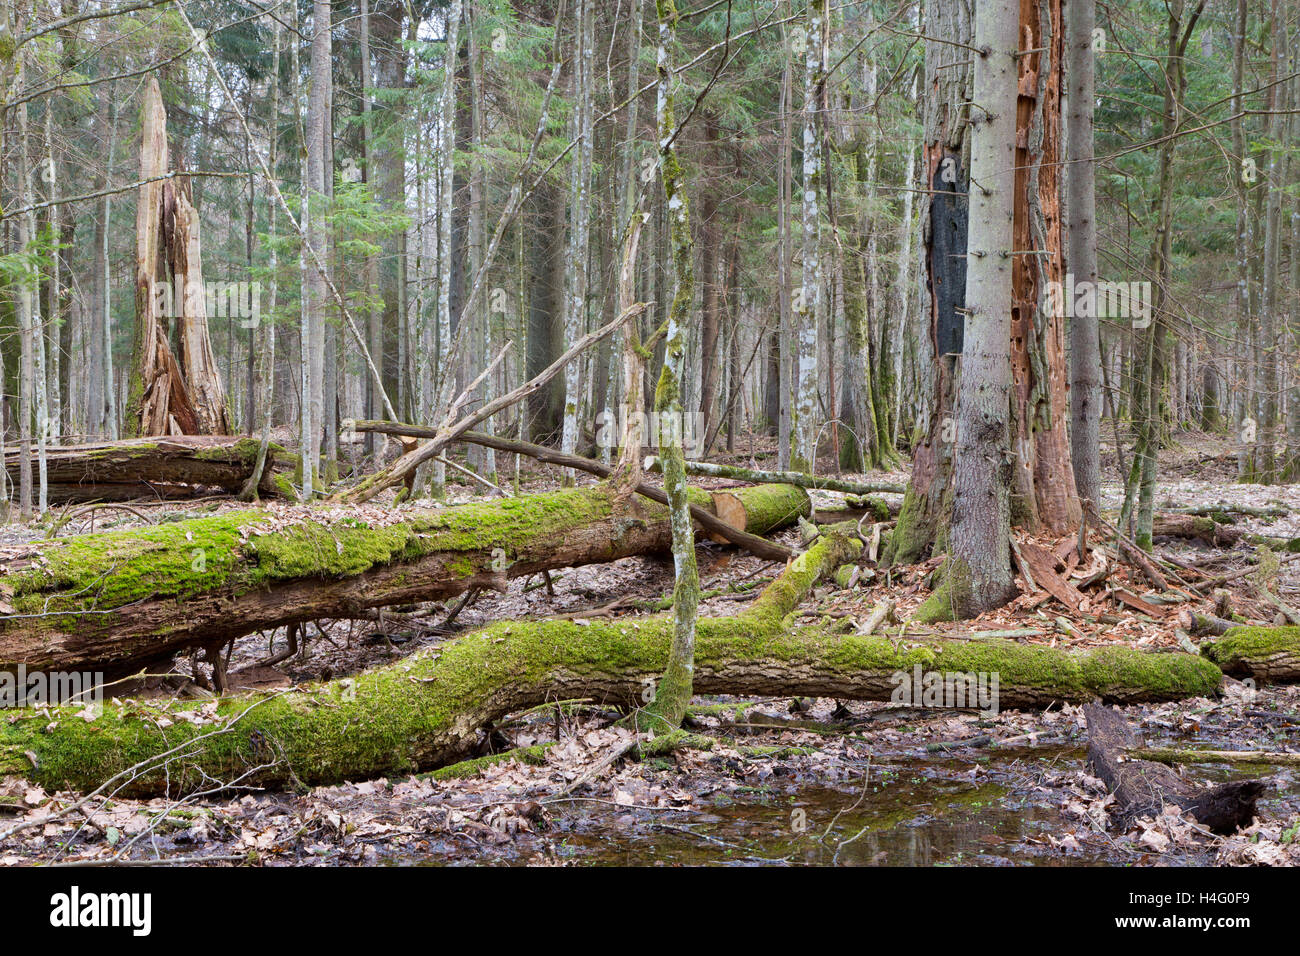 Two broken oak trees in spring forest stand just before vegetation starts,Bialowieza Forest,Poland,Europe - Stock Image